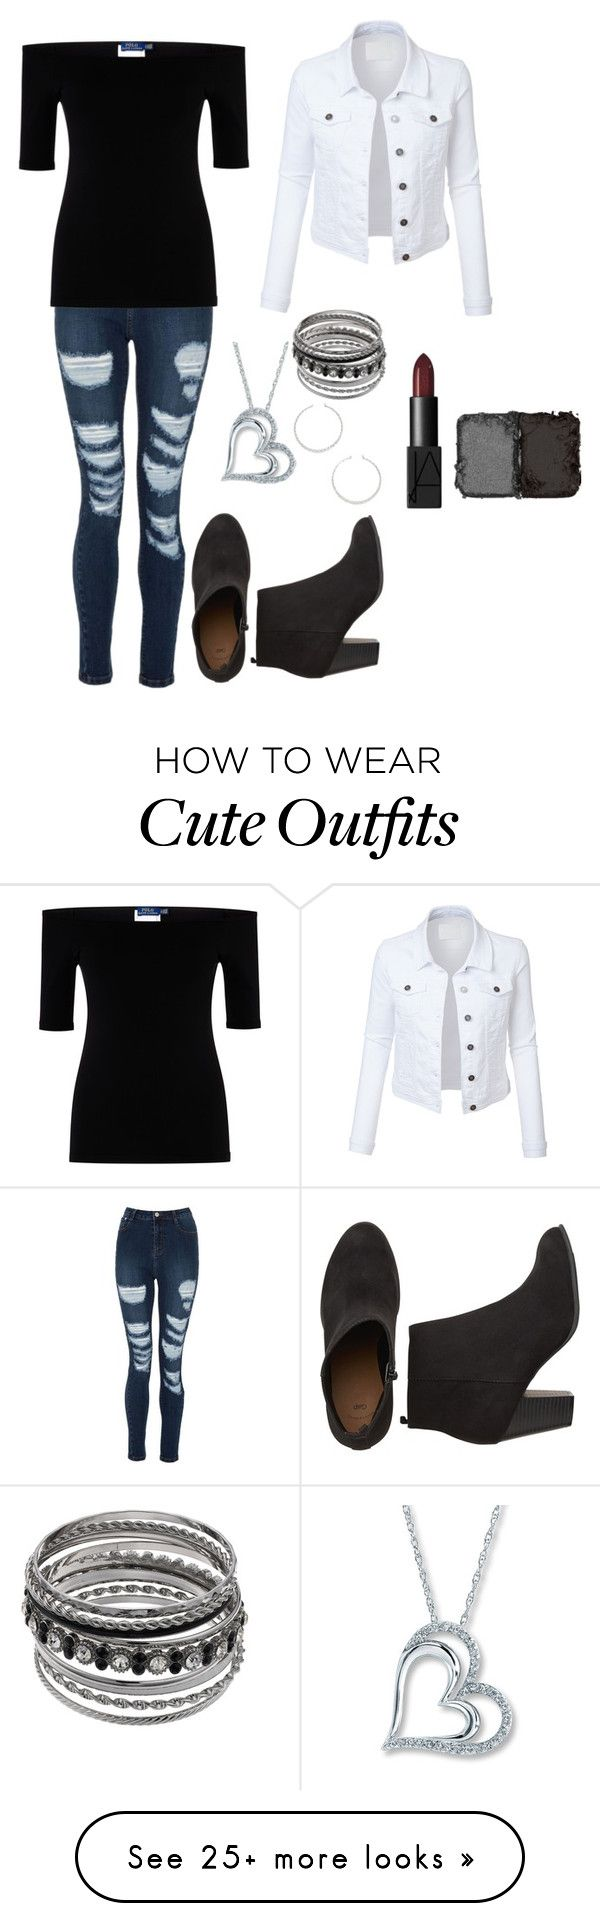 """""""My Outfit Idea: Simple, Edgy, and Cute"""" by mias-angels on Polyvore featuring Polo Ralph Lauren, LE3NO, Forever 21 and NARS Cosmetics"""